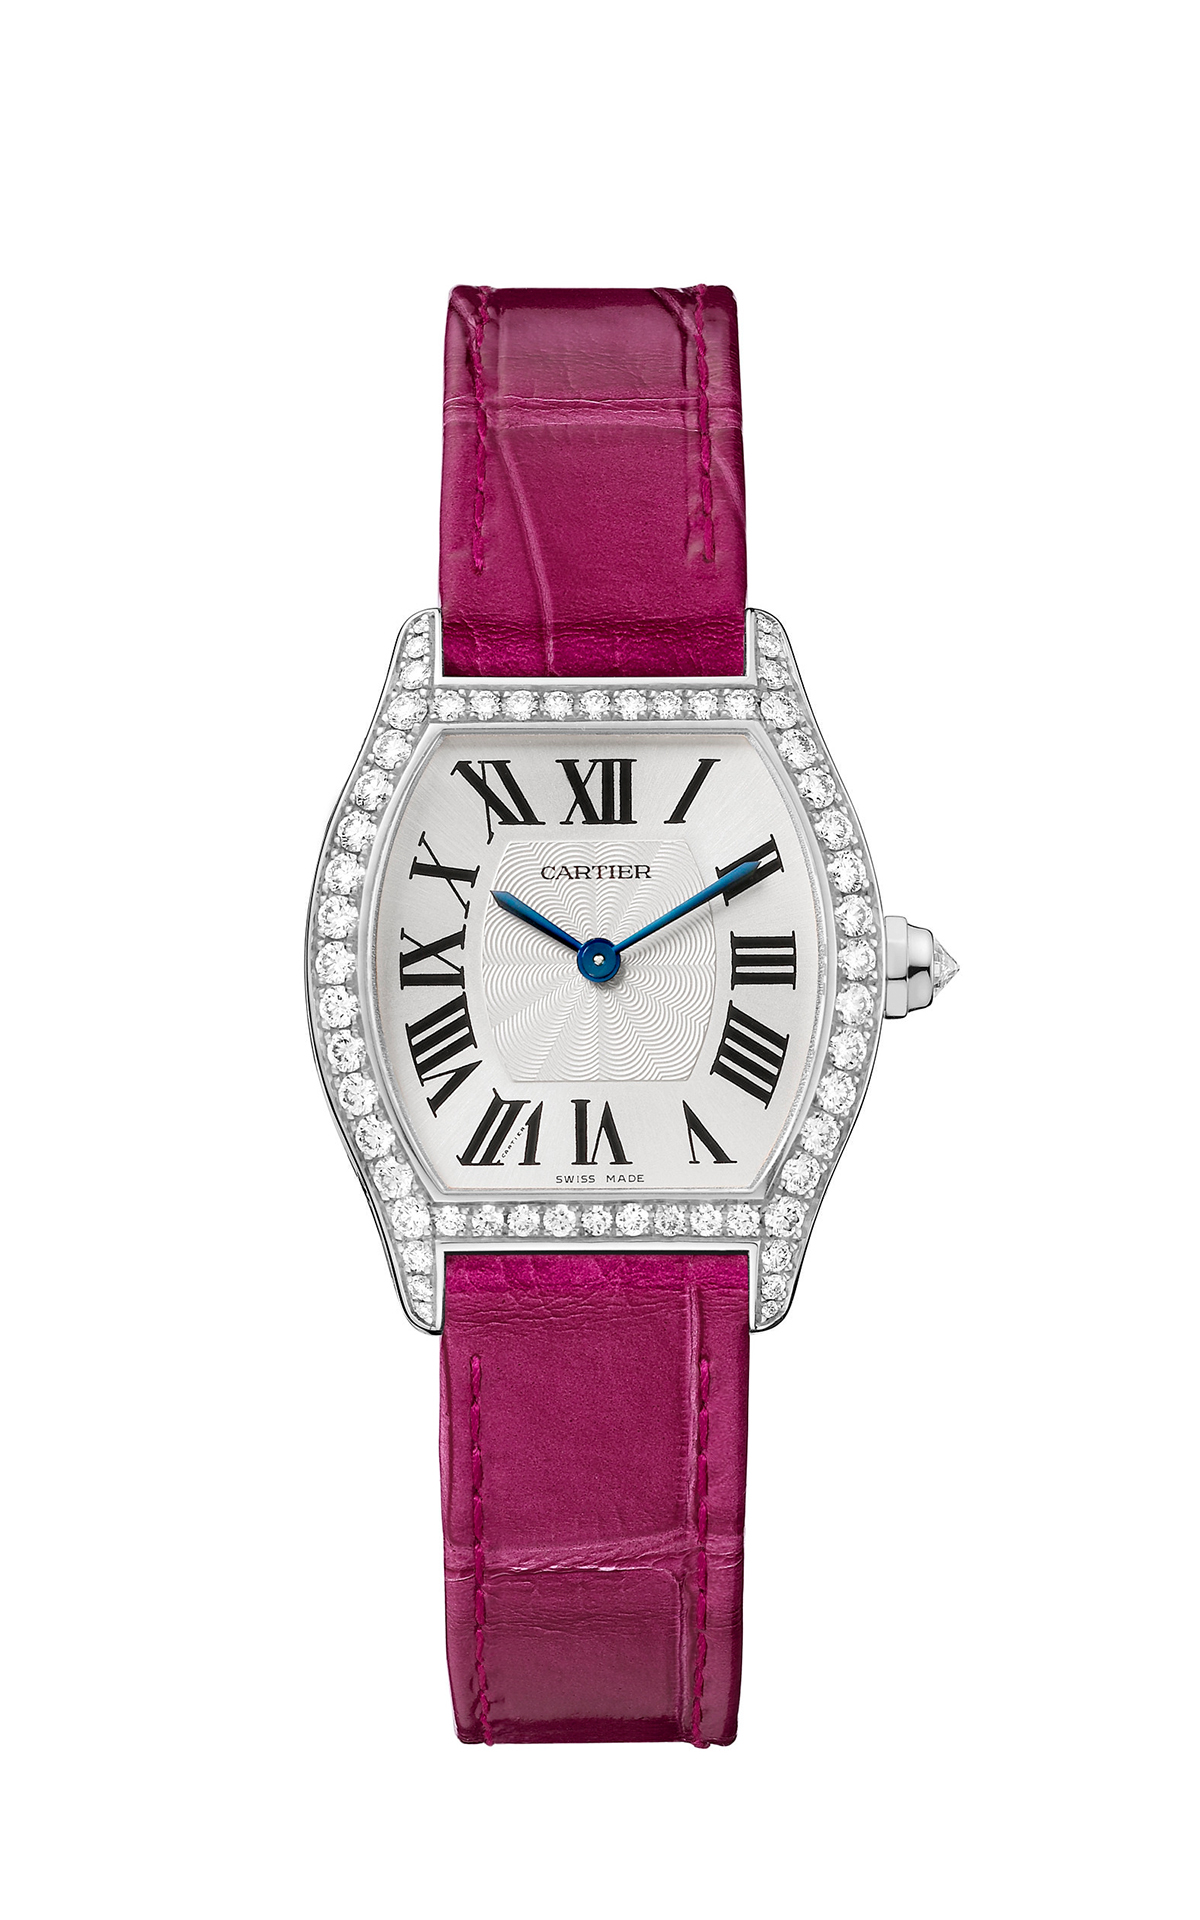 top tortue by cartier copy watch time five ten s arent women diamonds pink watches womens and transformed white gold aren small that t model insulting